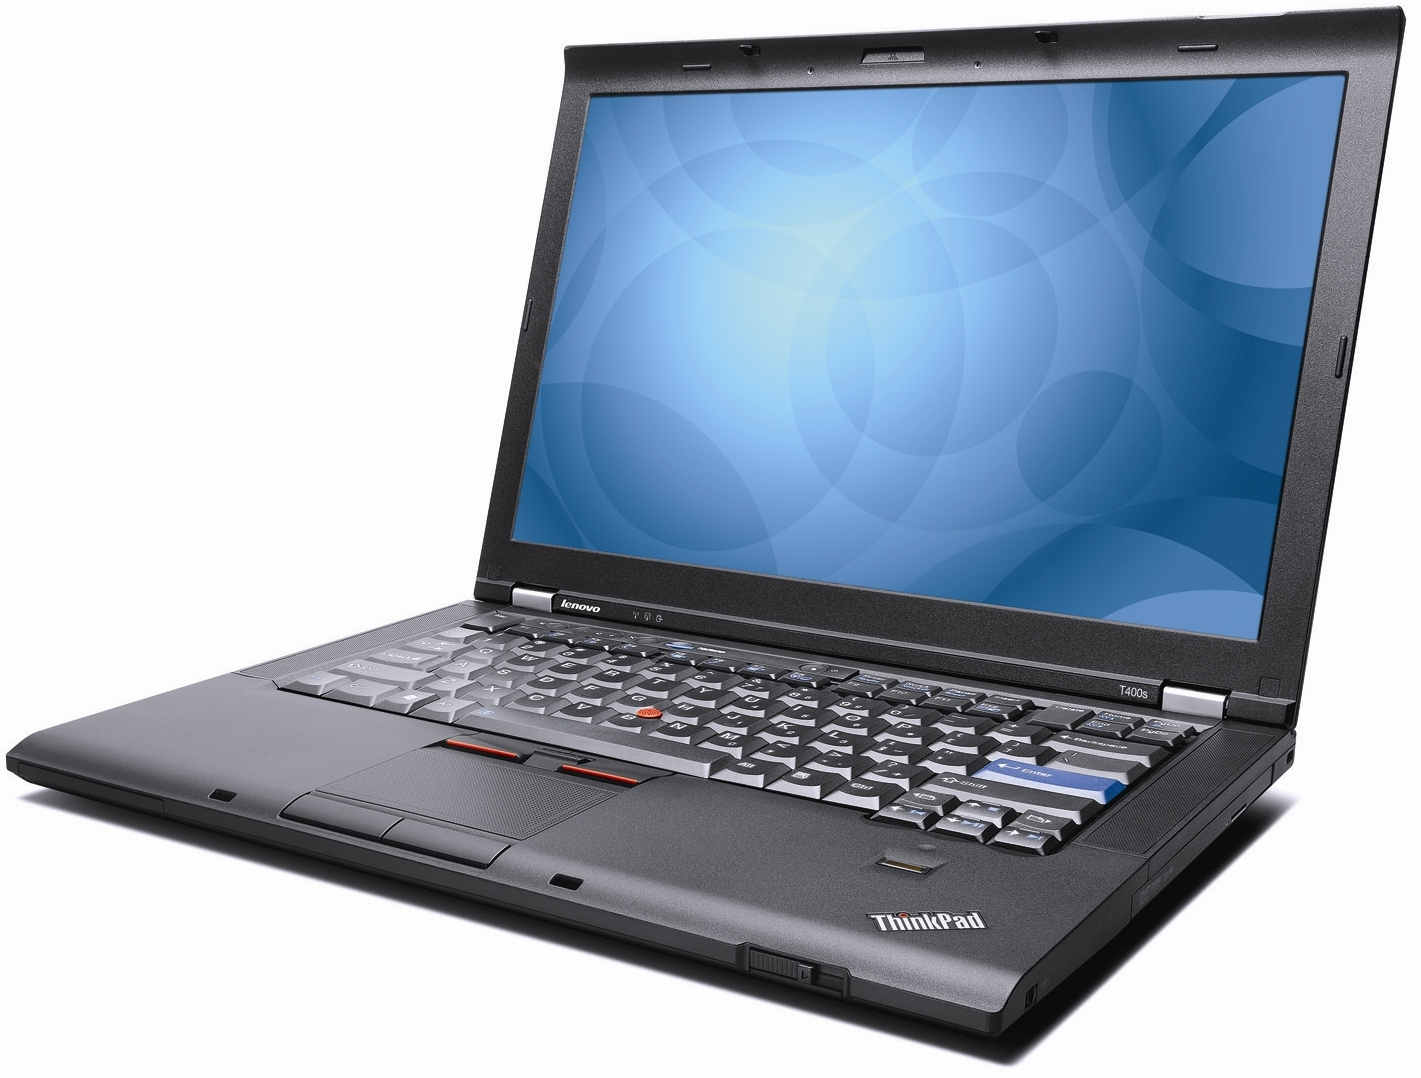 IBM THINKPAD W700 CONEXANT AUDIO WINDOWS 7 64 DRIVER